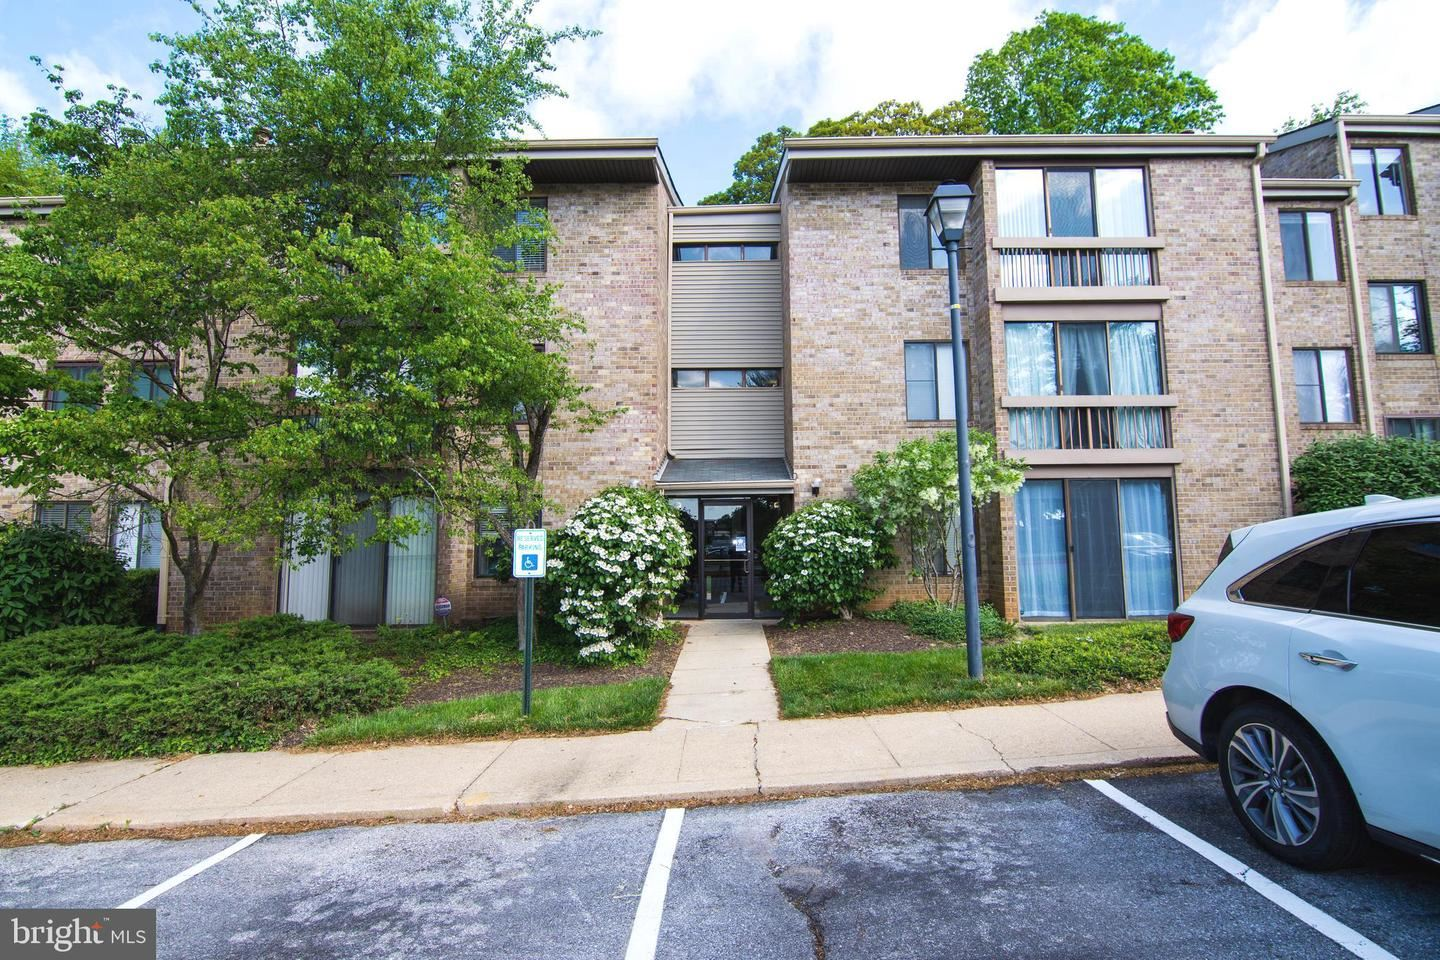 10596 TWIN RIVERS RD #B-1, Columbia, MD 21044 - MLS#: MDHW294014